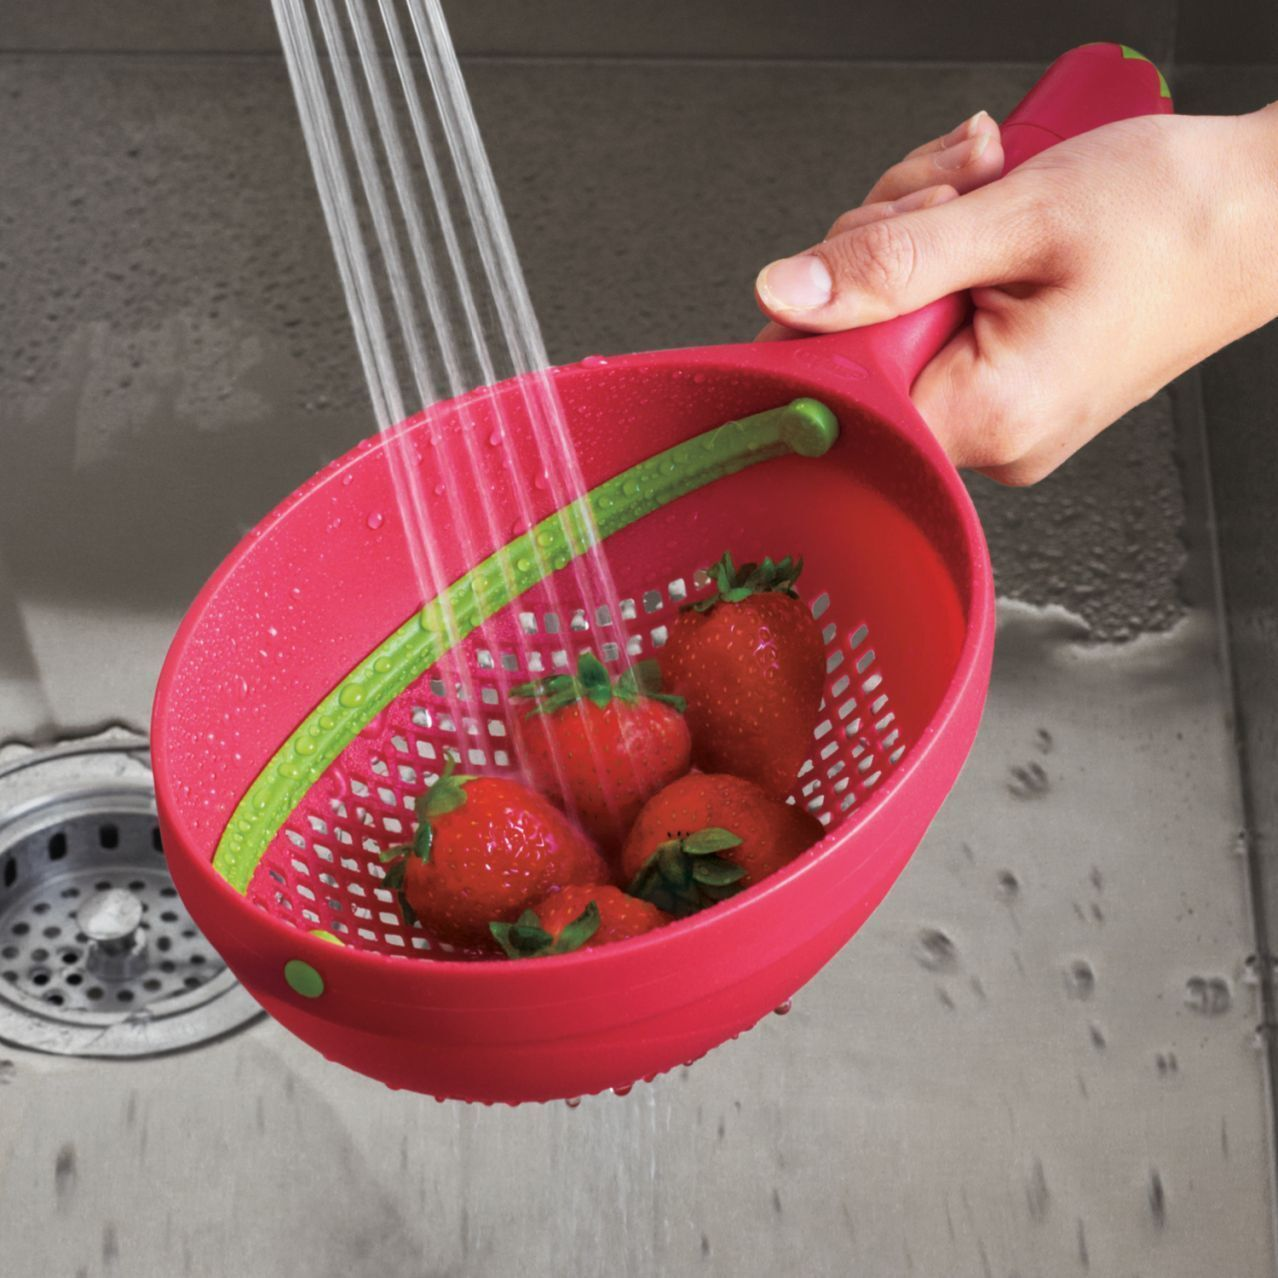 Limited Edition Strawberry Red Chef'n Wash 'n Toss Sweeper Colander Strain Chefn